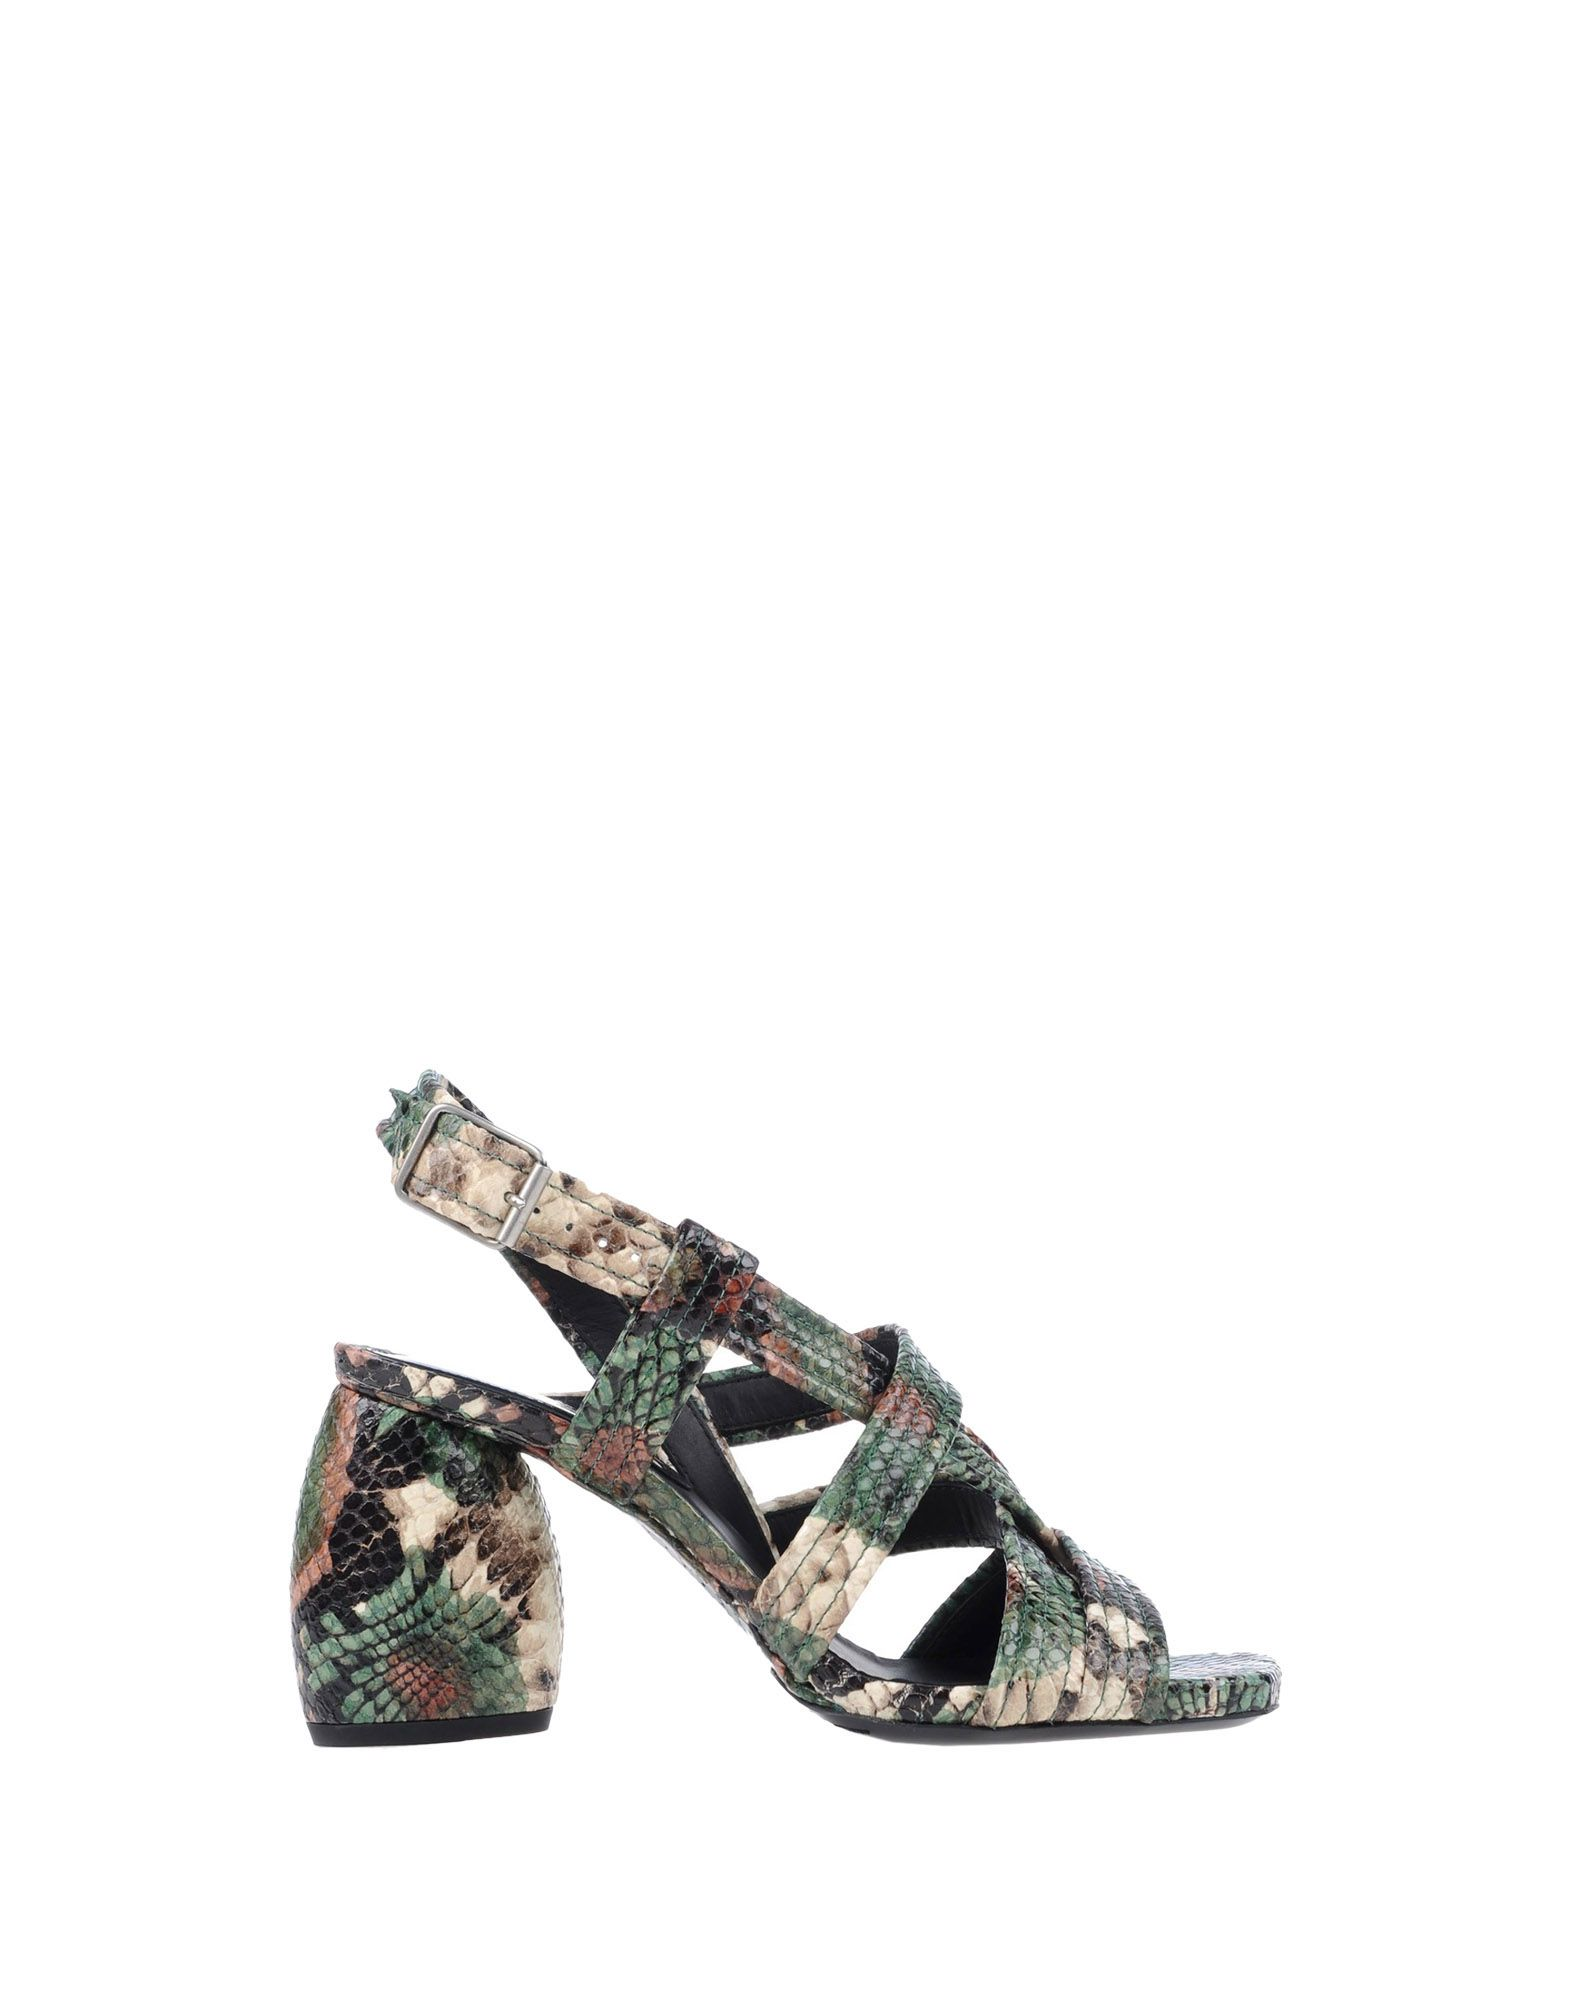 Sandales Dries Van Noten Femme - Sandales Dries Van Noten sur